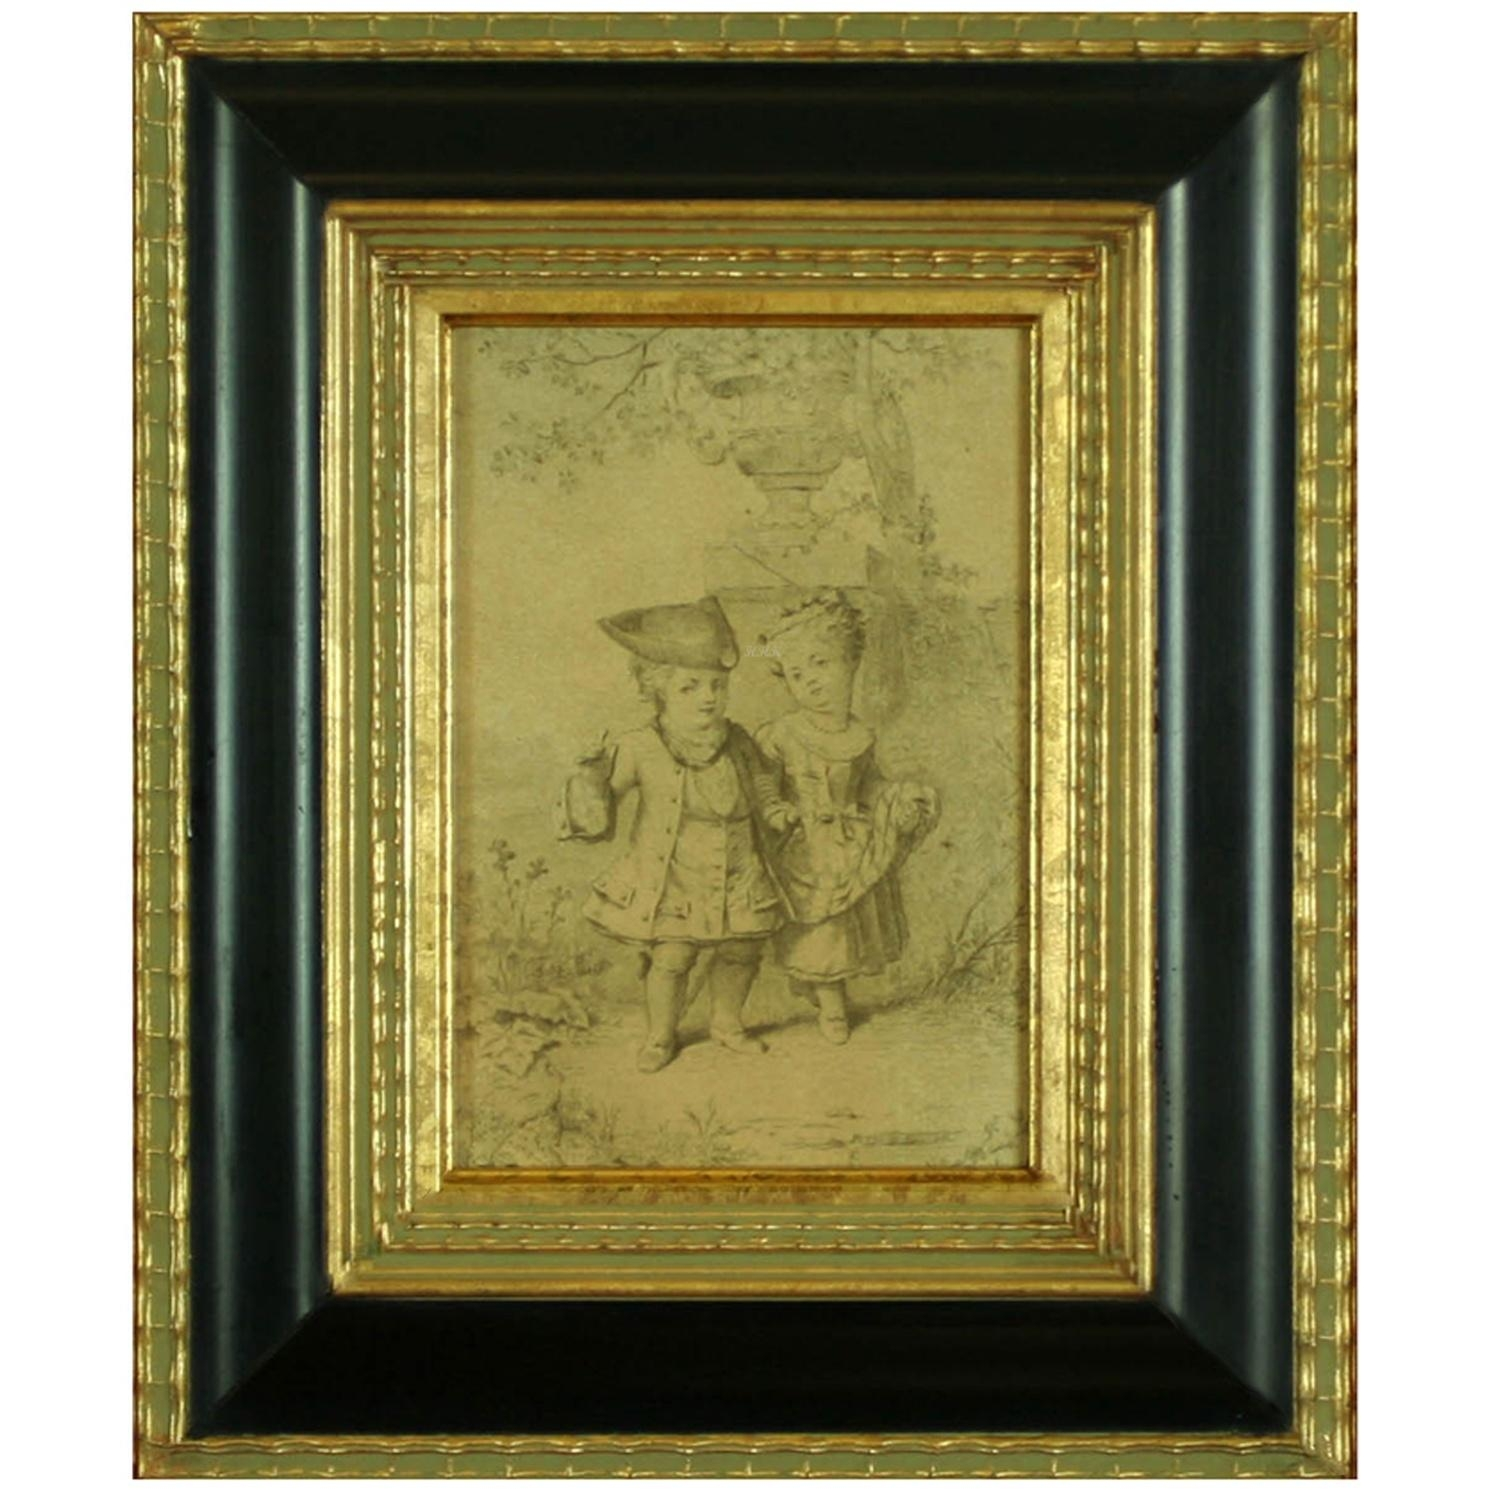 Home Decor: Shabby Chic Children& 39;s Bedroom Wall Art, Country In Country French Wall Art (View 8 of 20)